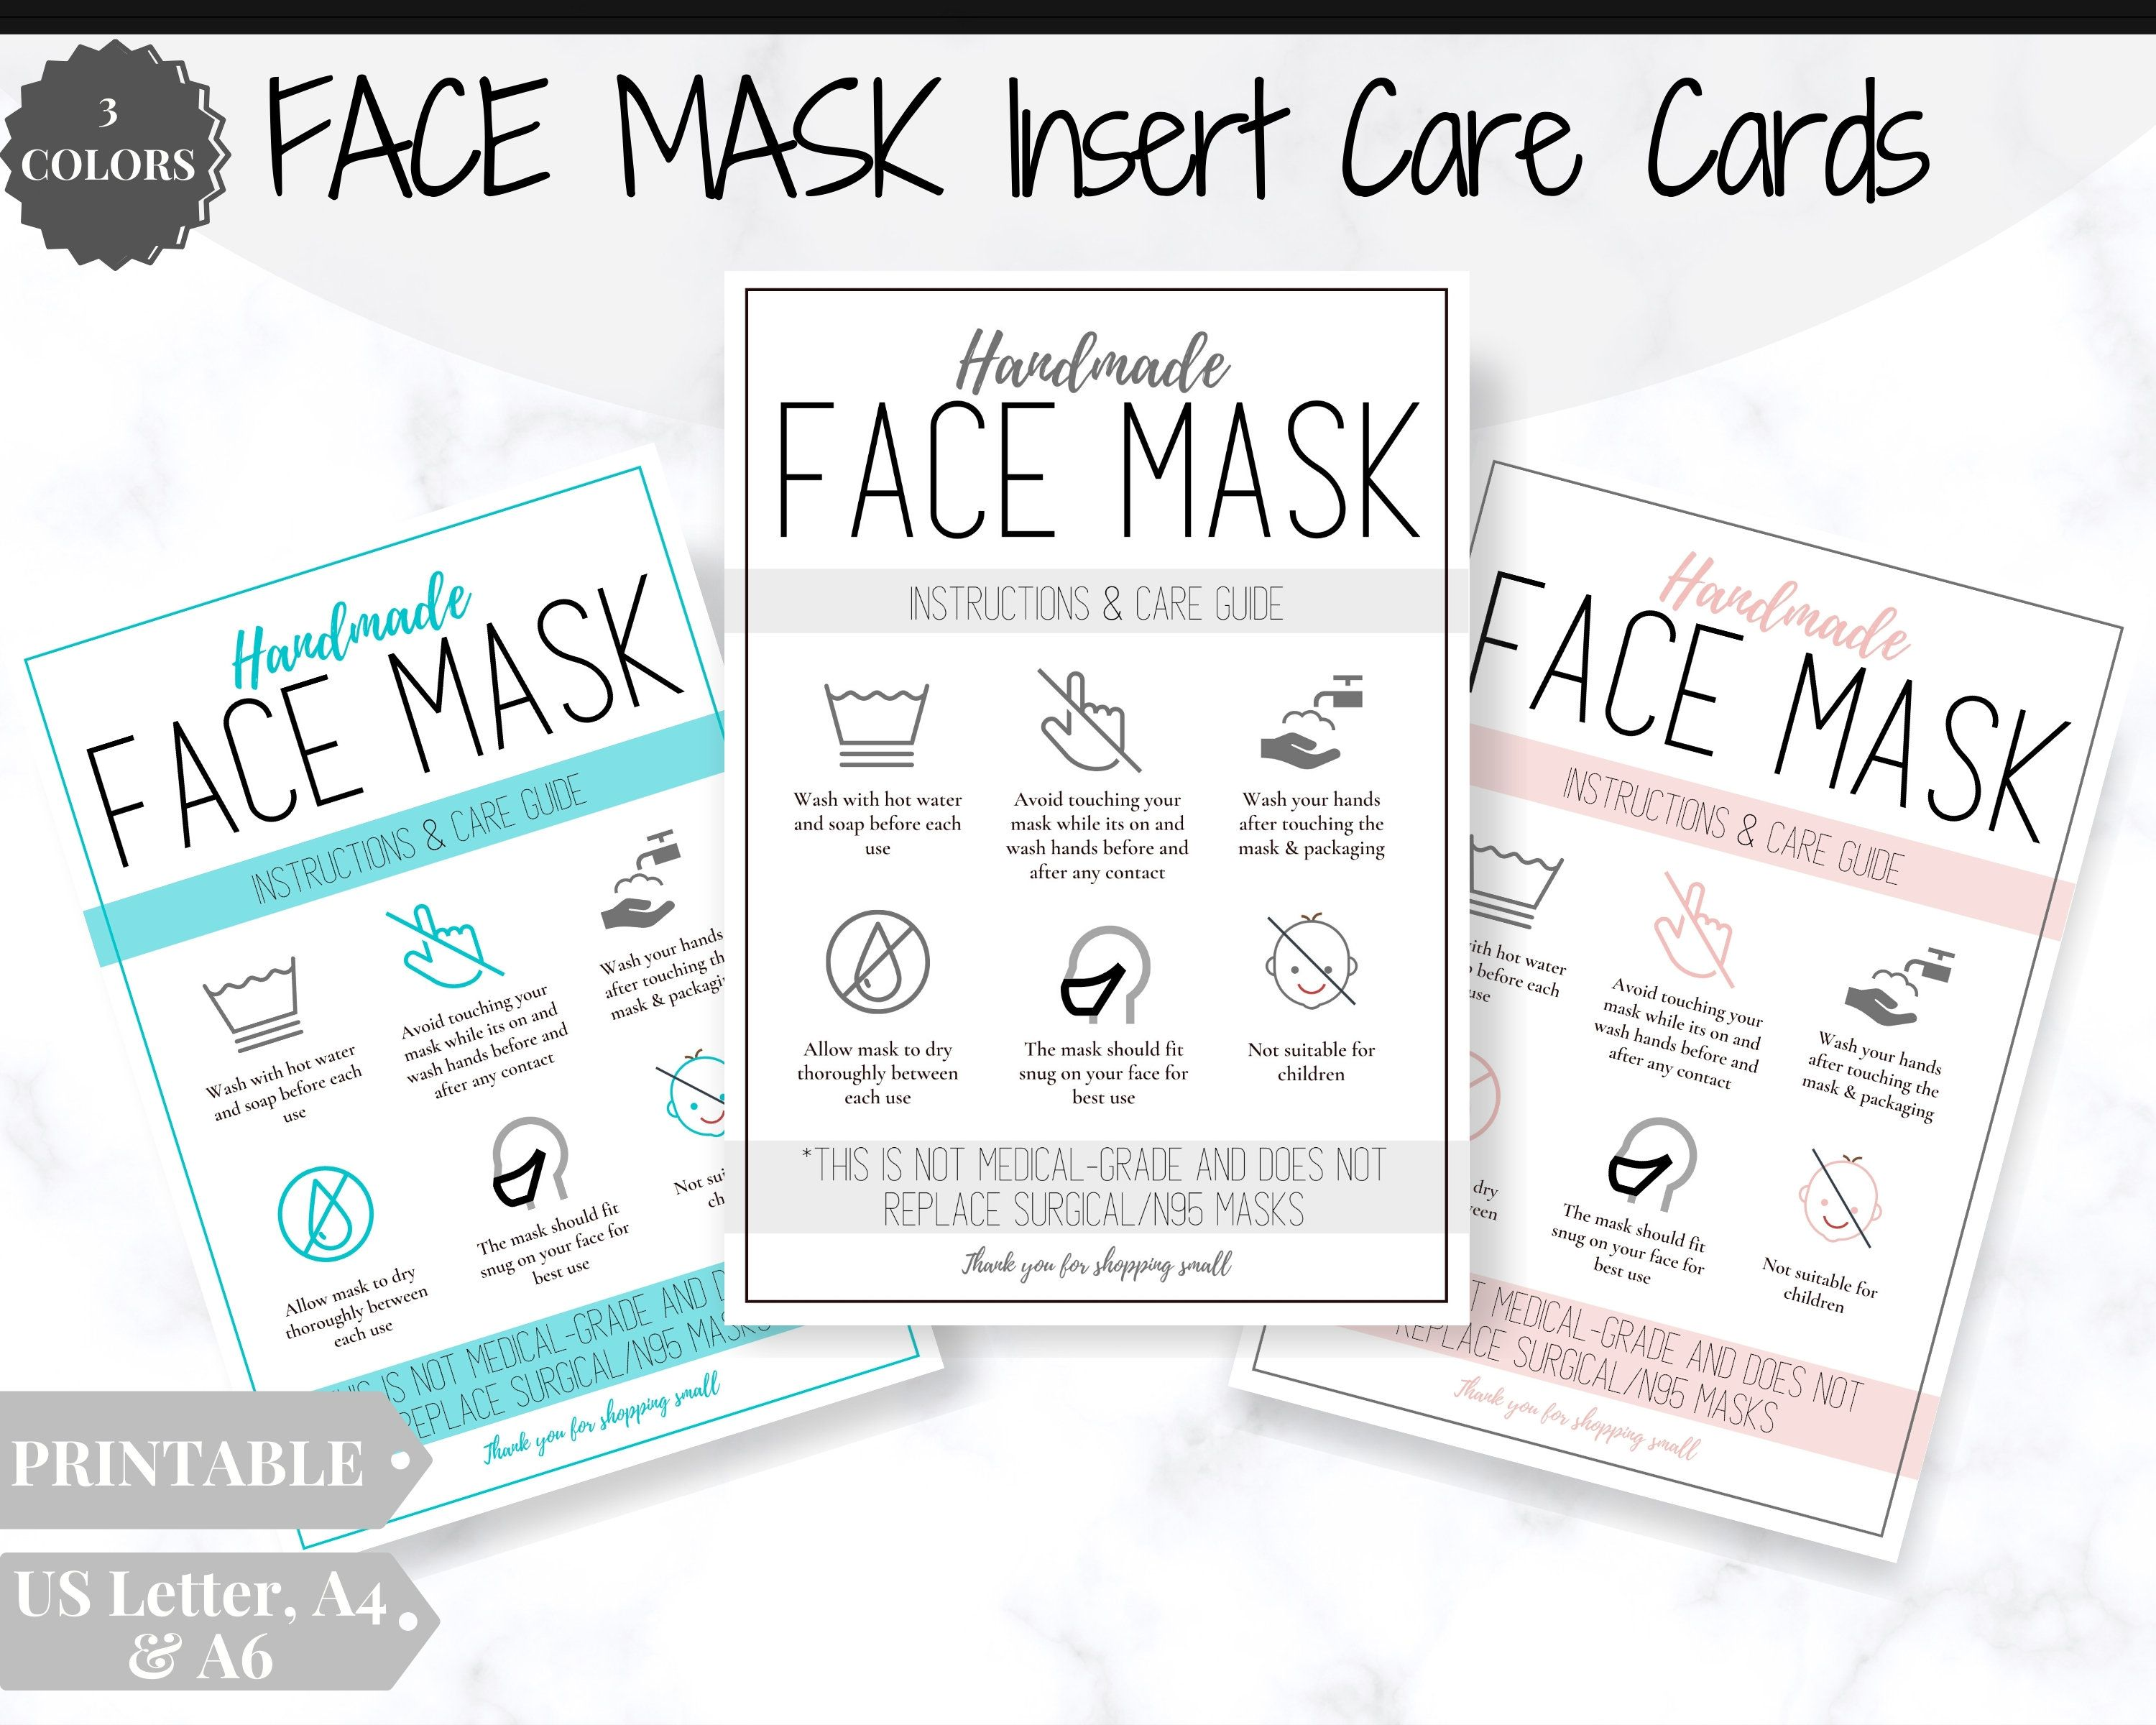 Face Mask Label Care Card How To Handle Order Card Face Mask Printable Instructions Business Labels Face Mask Seller Package Label Tag Business Labels Thanks Card Face Mask